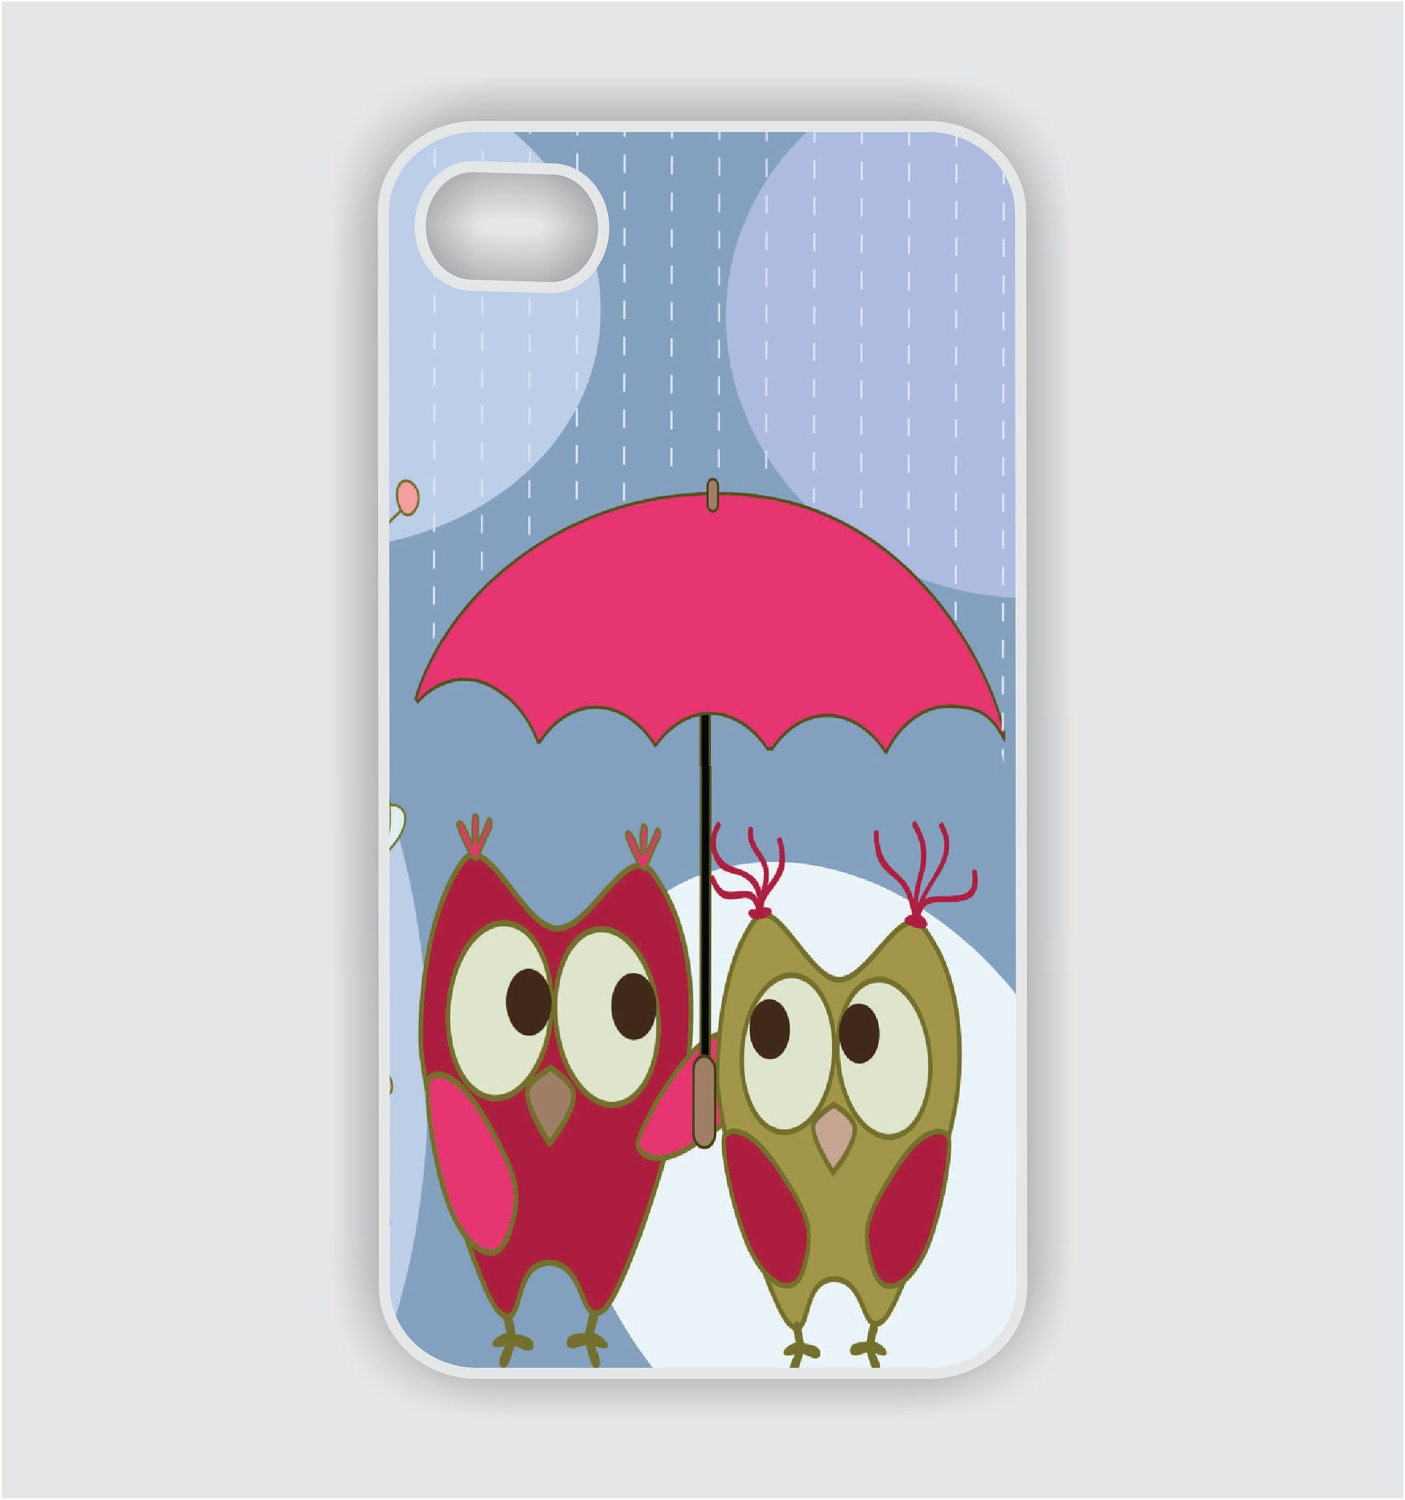 iPhone 4 Case - Owls Under Umbrella - iPhone 4 Case - iPhone Case, iPhone 4s Case, Cases for iPhone 4, Hard iPhone 4 Case (i1018) - CreateItYourWay